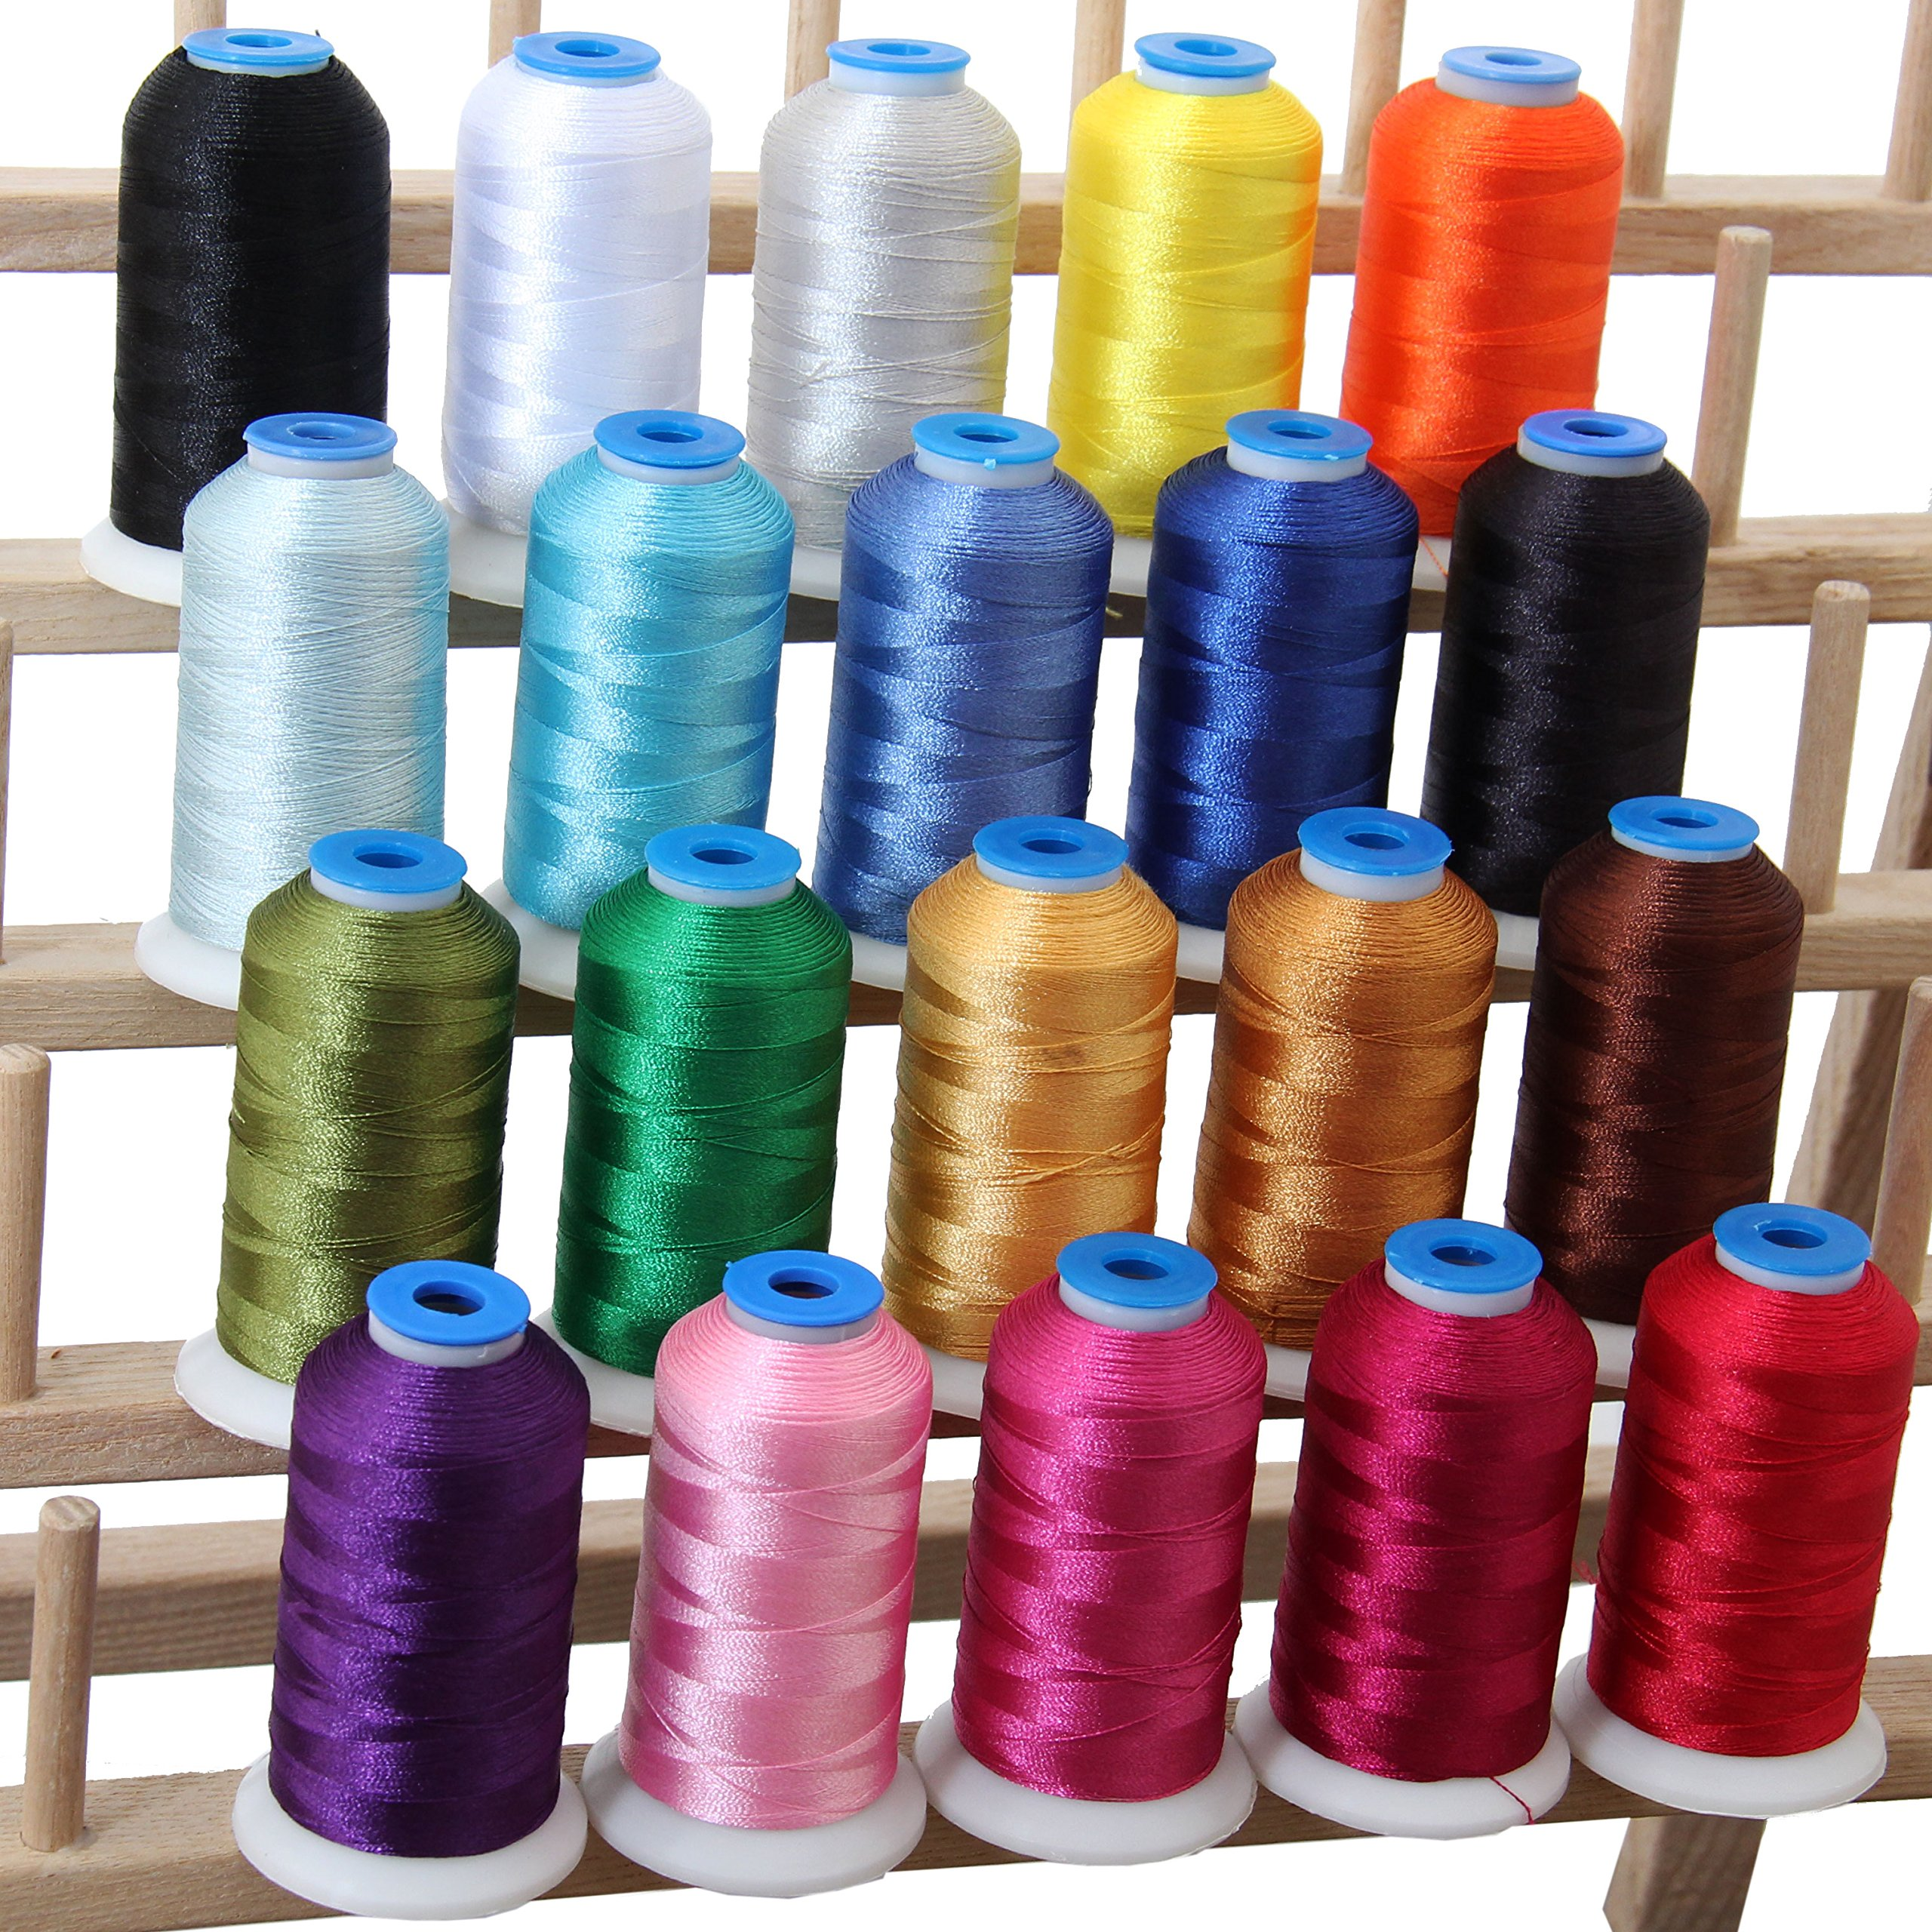 Threadart 20 Spool Polyester Embroidery Machine Thread Essential Colors | 1000M Spools 40wt | For Brother Babylock Janome Singer Pfaff Husqvarna Bernina Machines - 10 Sets Available by Threadart